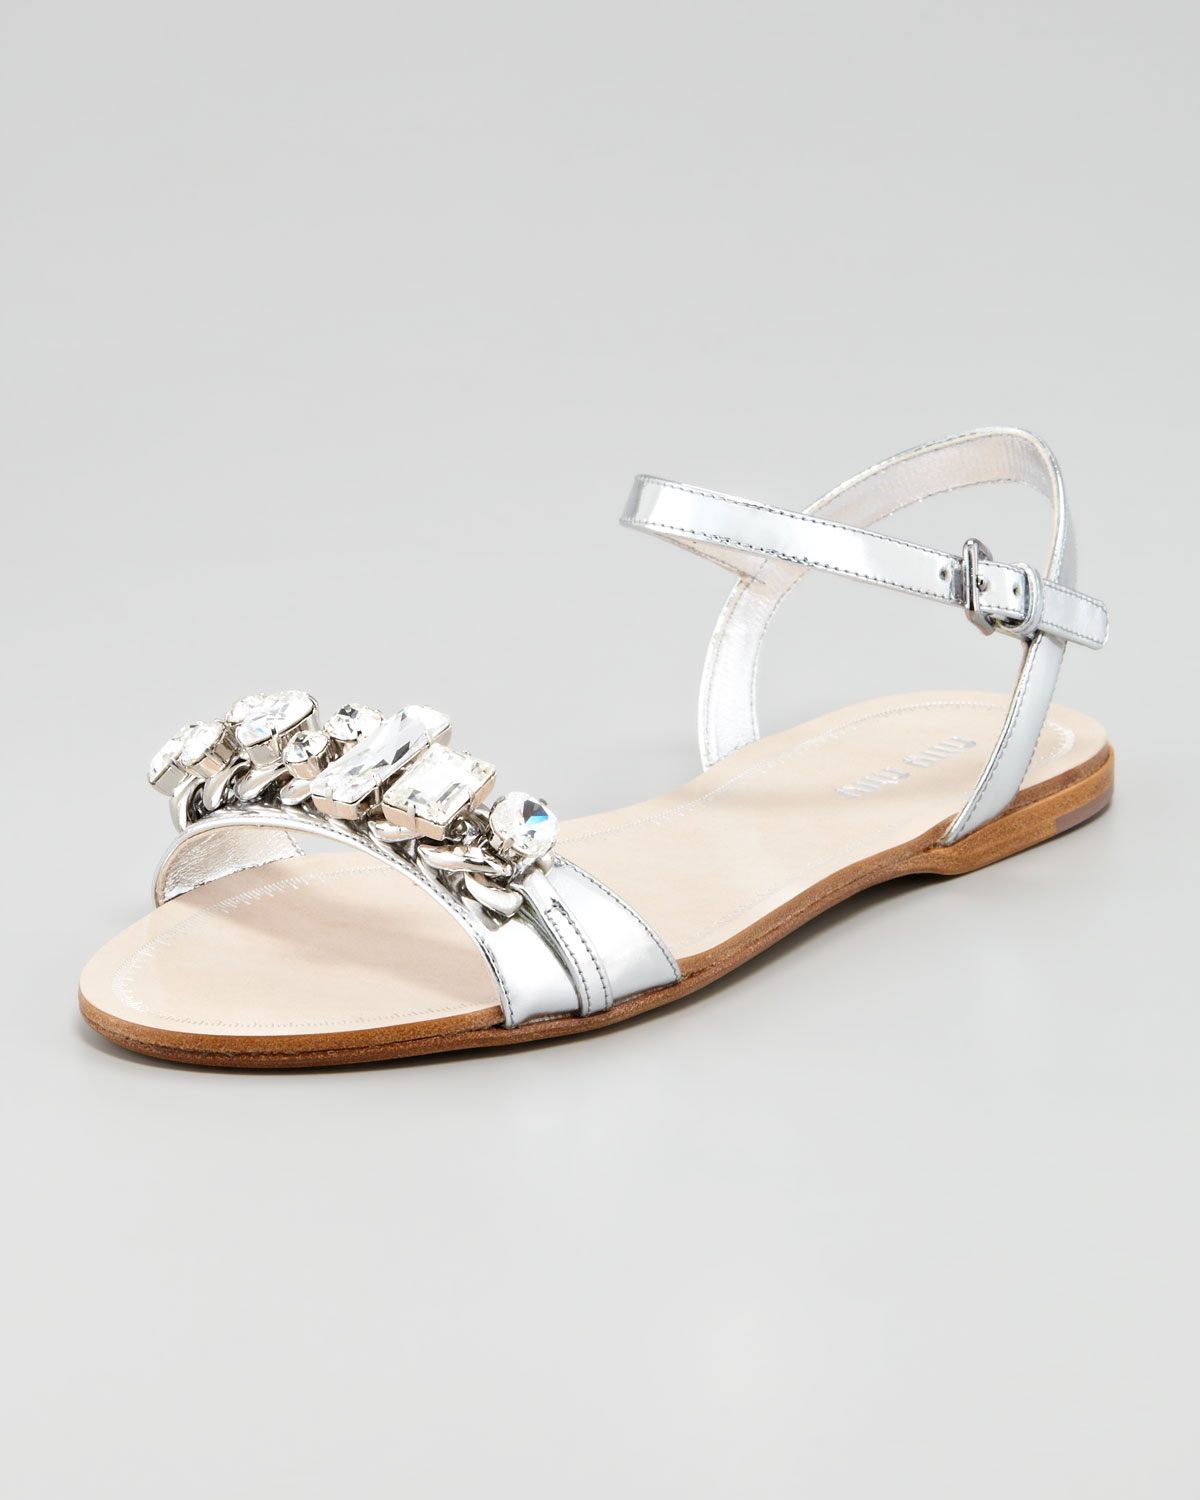 affedcf11 Lyst - Miu Miu Crystal Strap Flat Sandals in Metallic